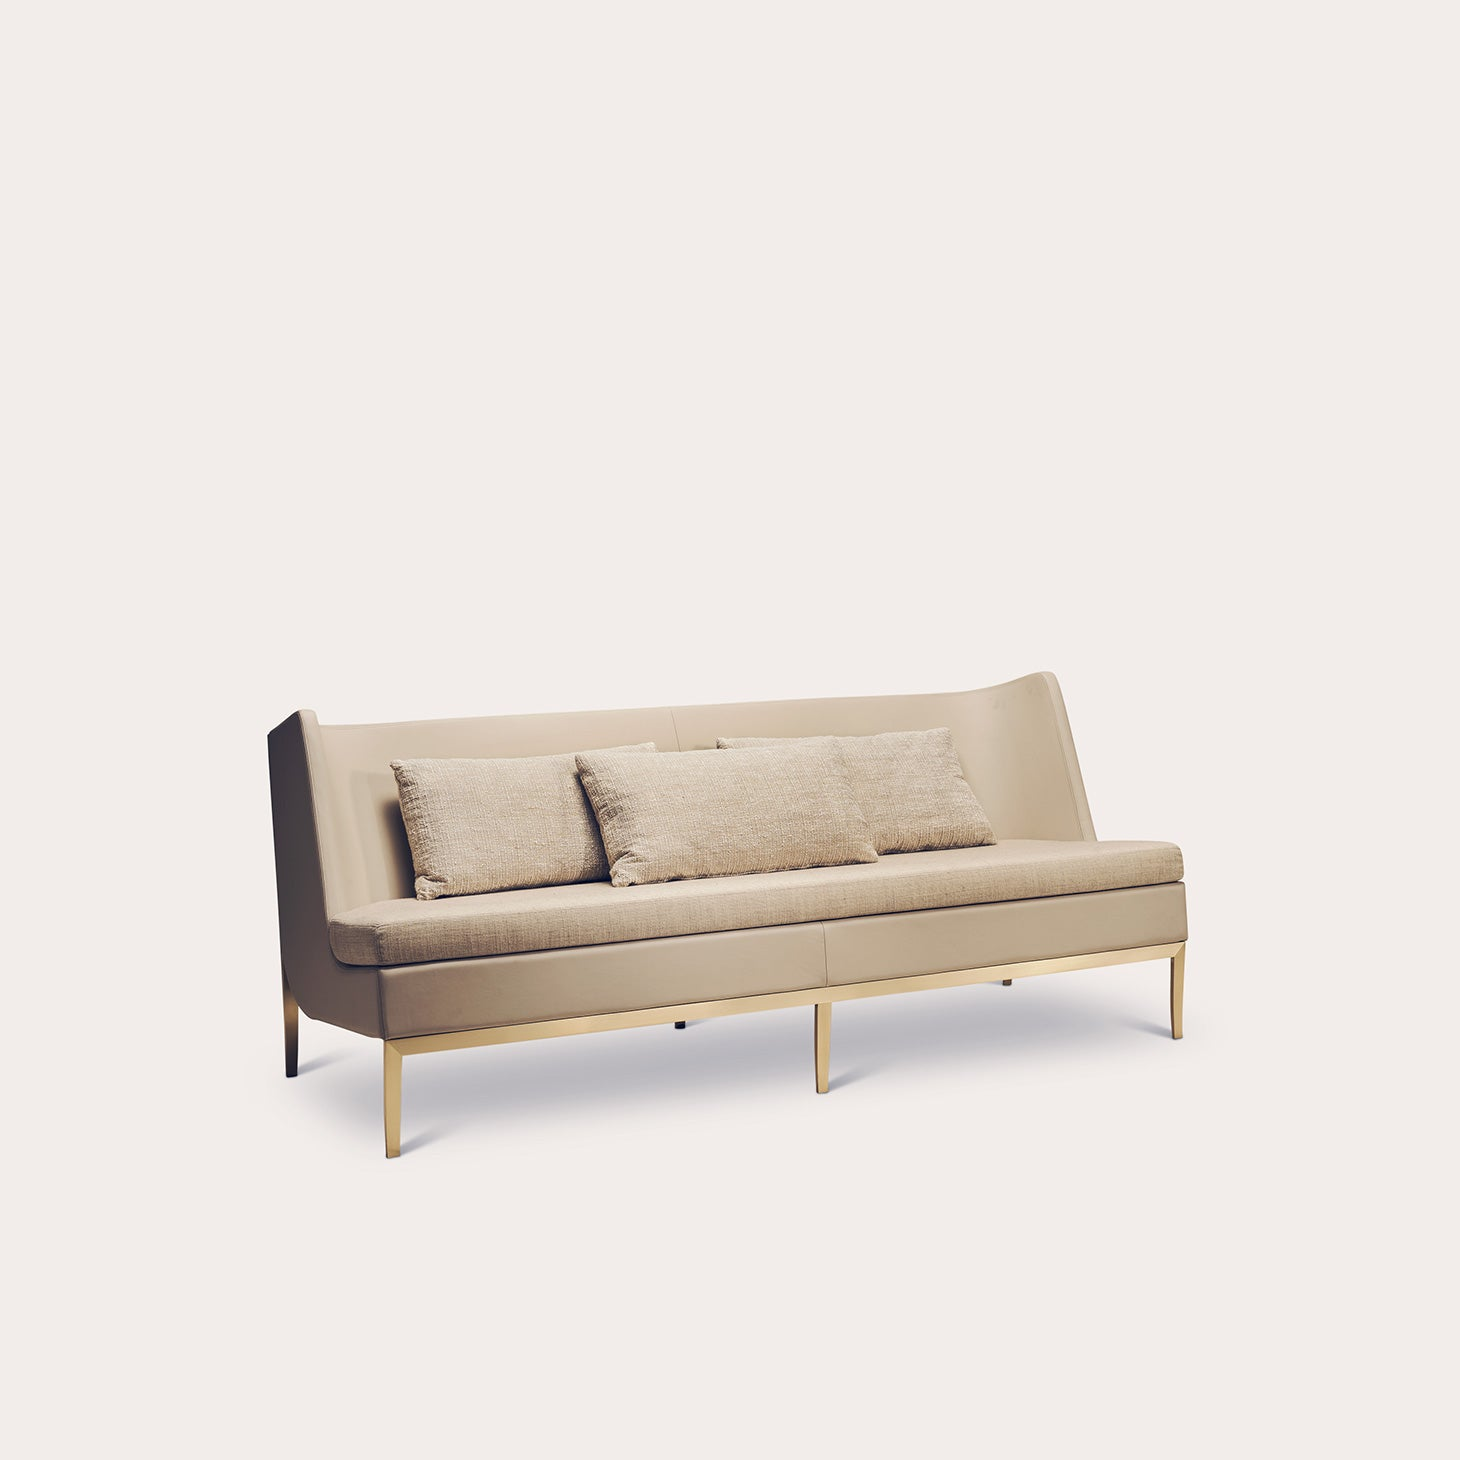 COURTRAI Sofa Bruno Moinard Designer Furniture Sku: 773-240-10005